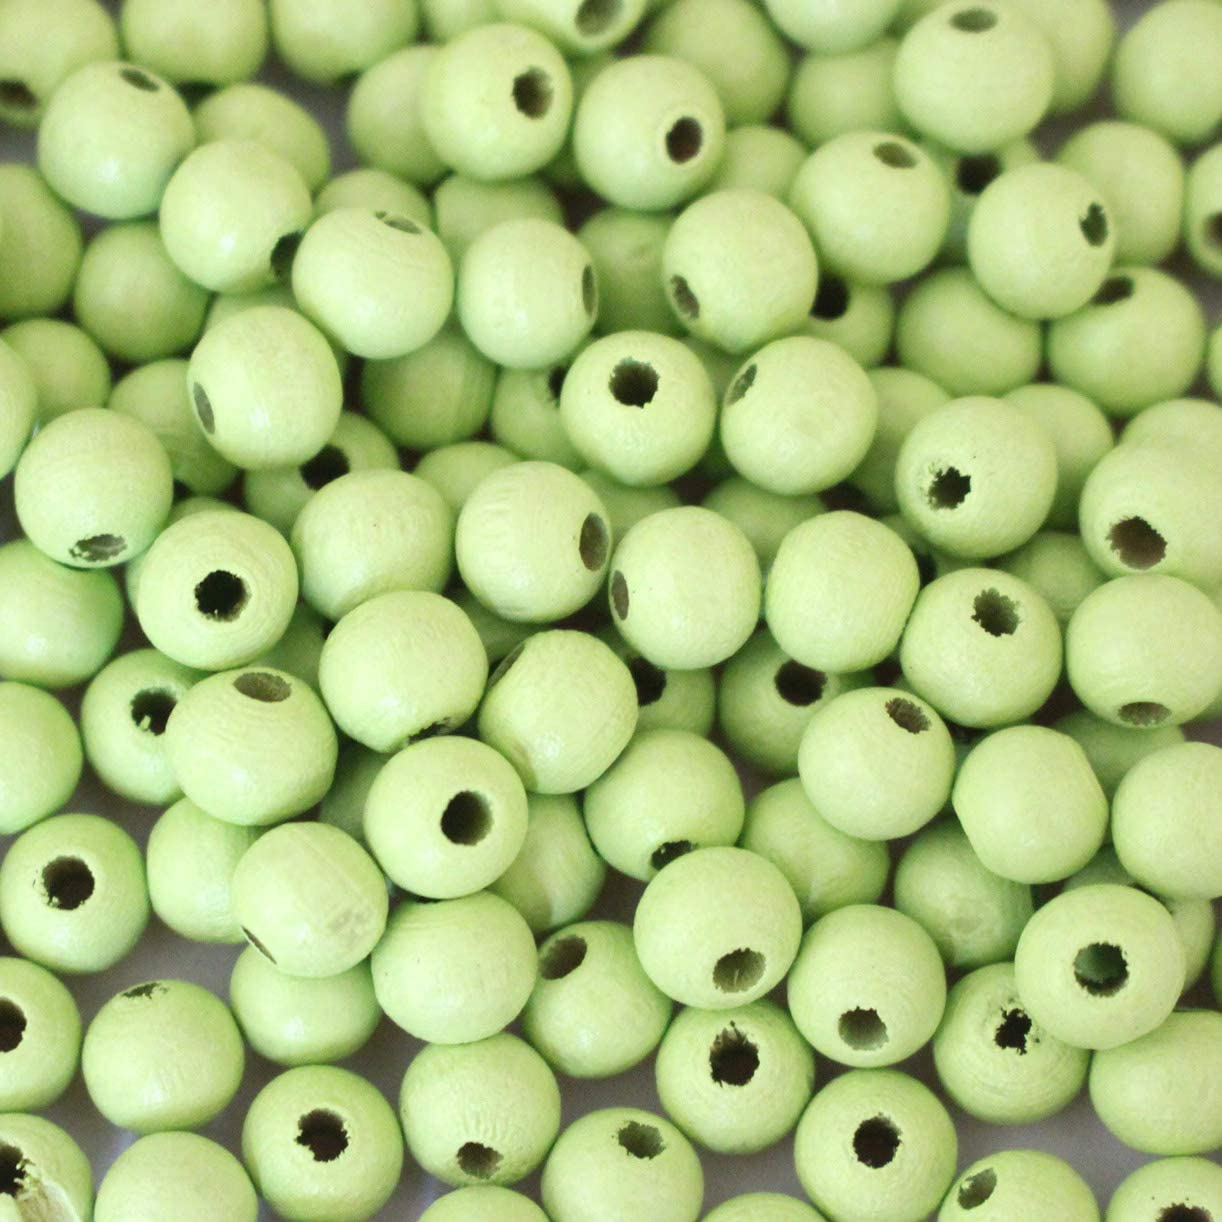 Tacool 500pcs Wood Beads Round Beads for Jewelry DIY Craft Making Loose Wooden Beads fit Gemstone Beads (Apple Green, 10mm)